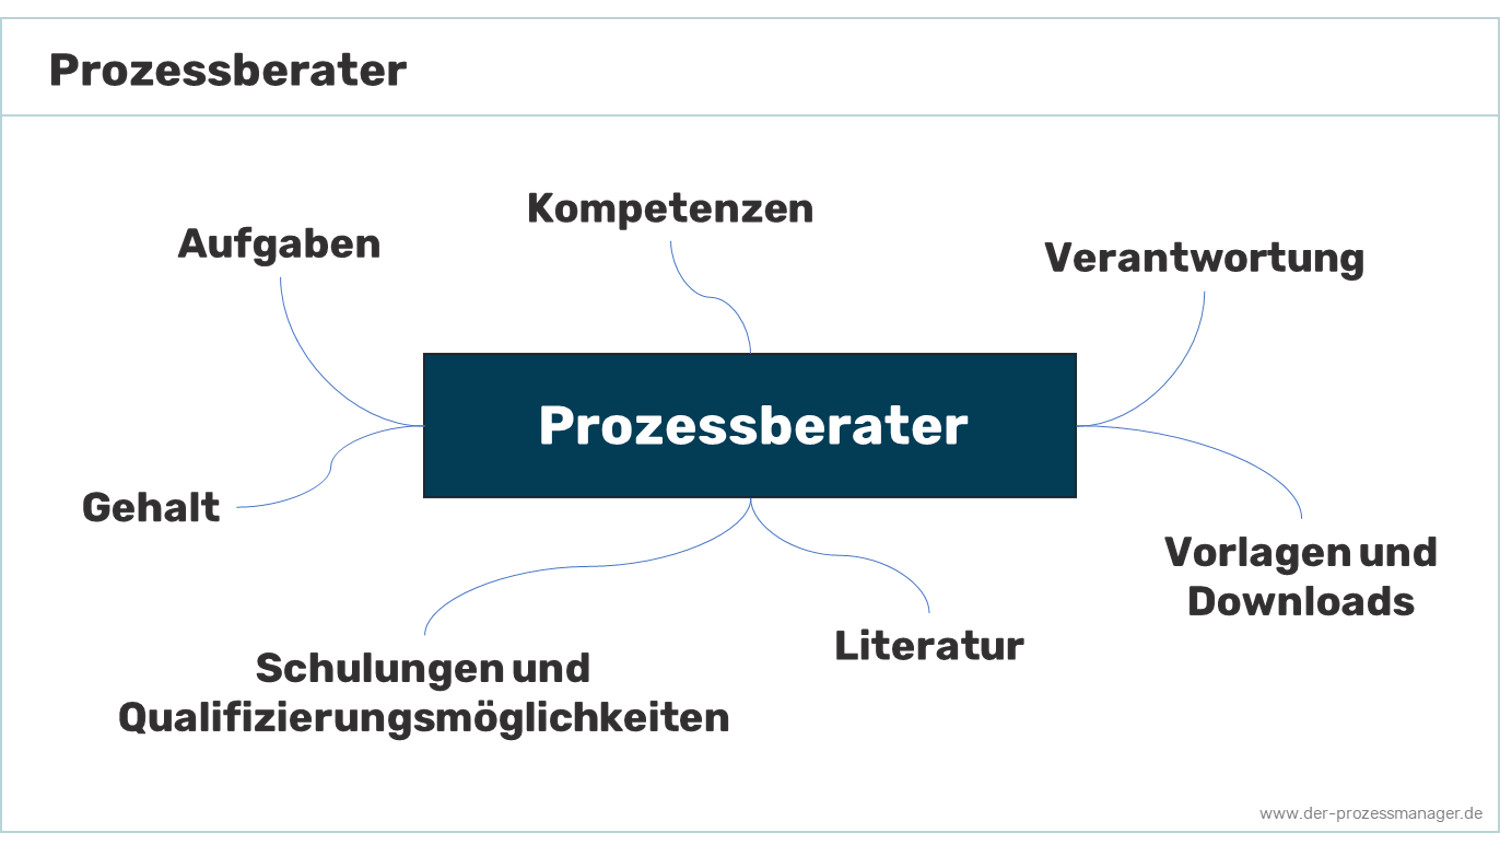 Prozessberater